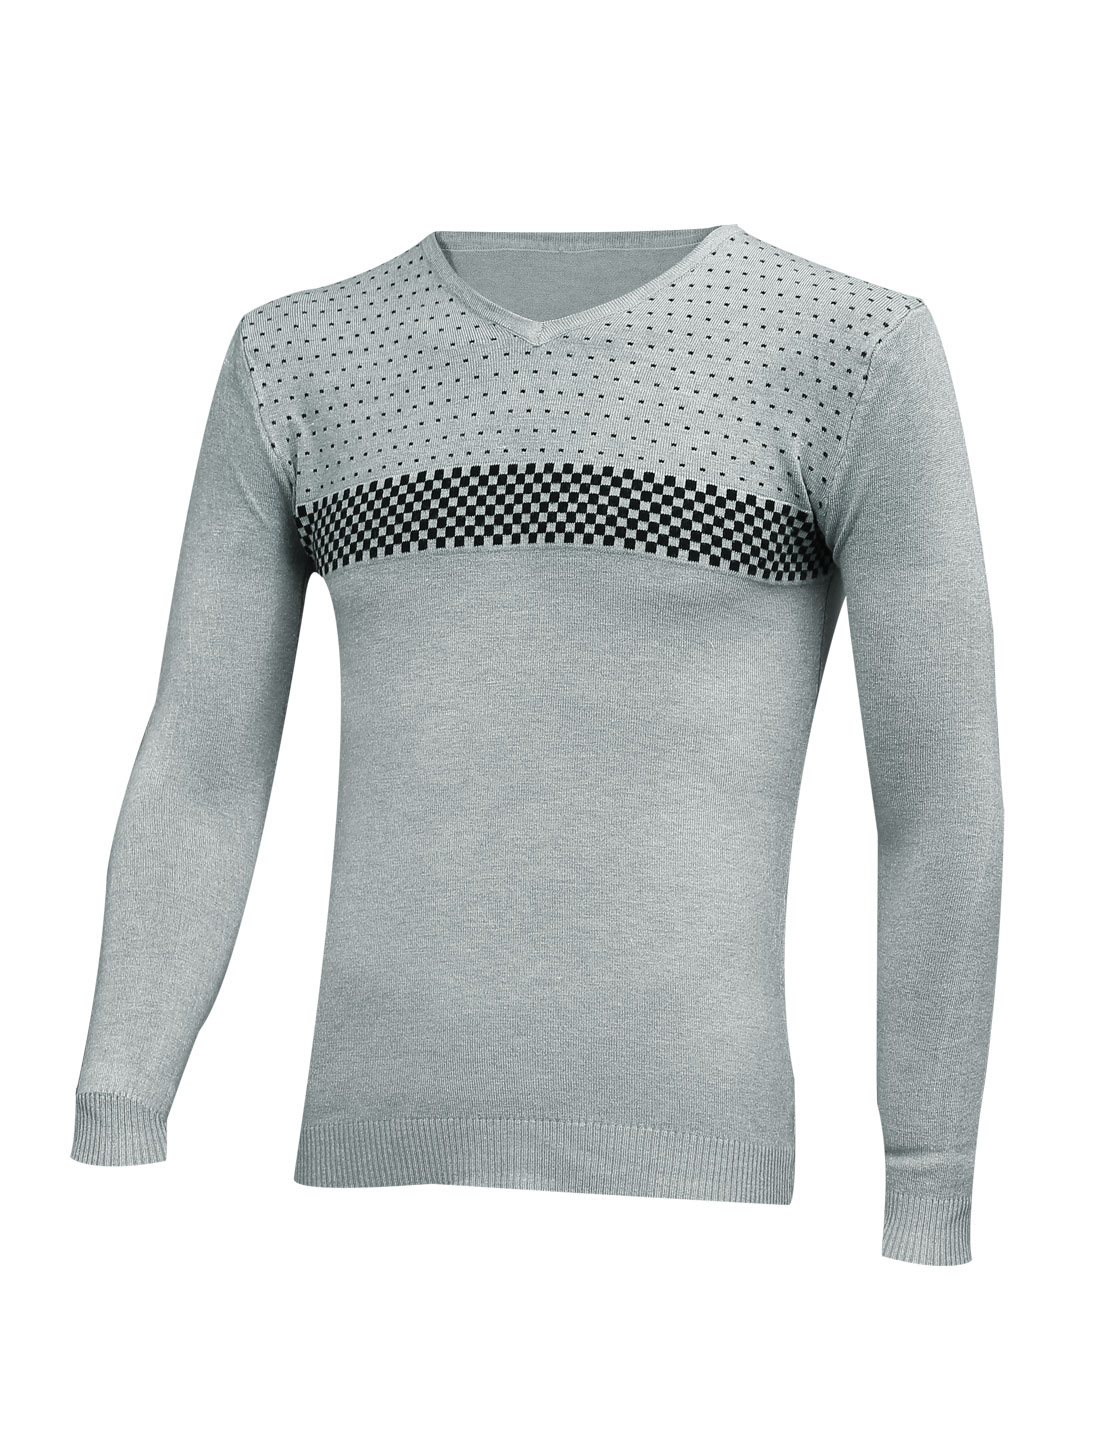 Long Sleeves Plaids Form-fitting Light Gray Knit Shirt for Men S